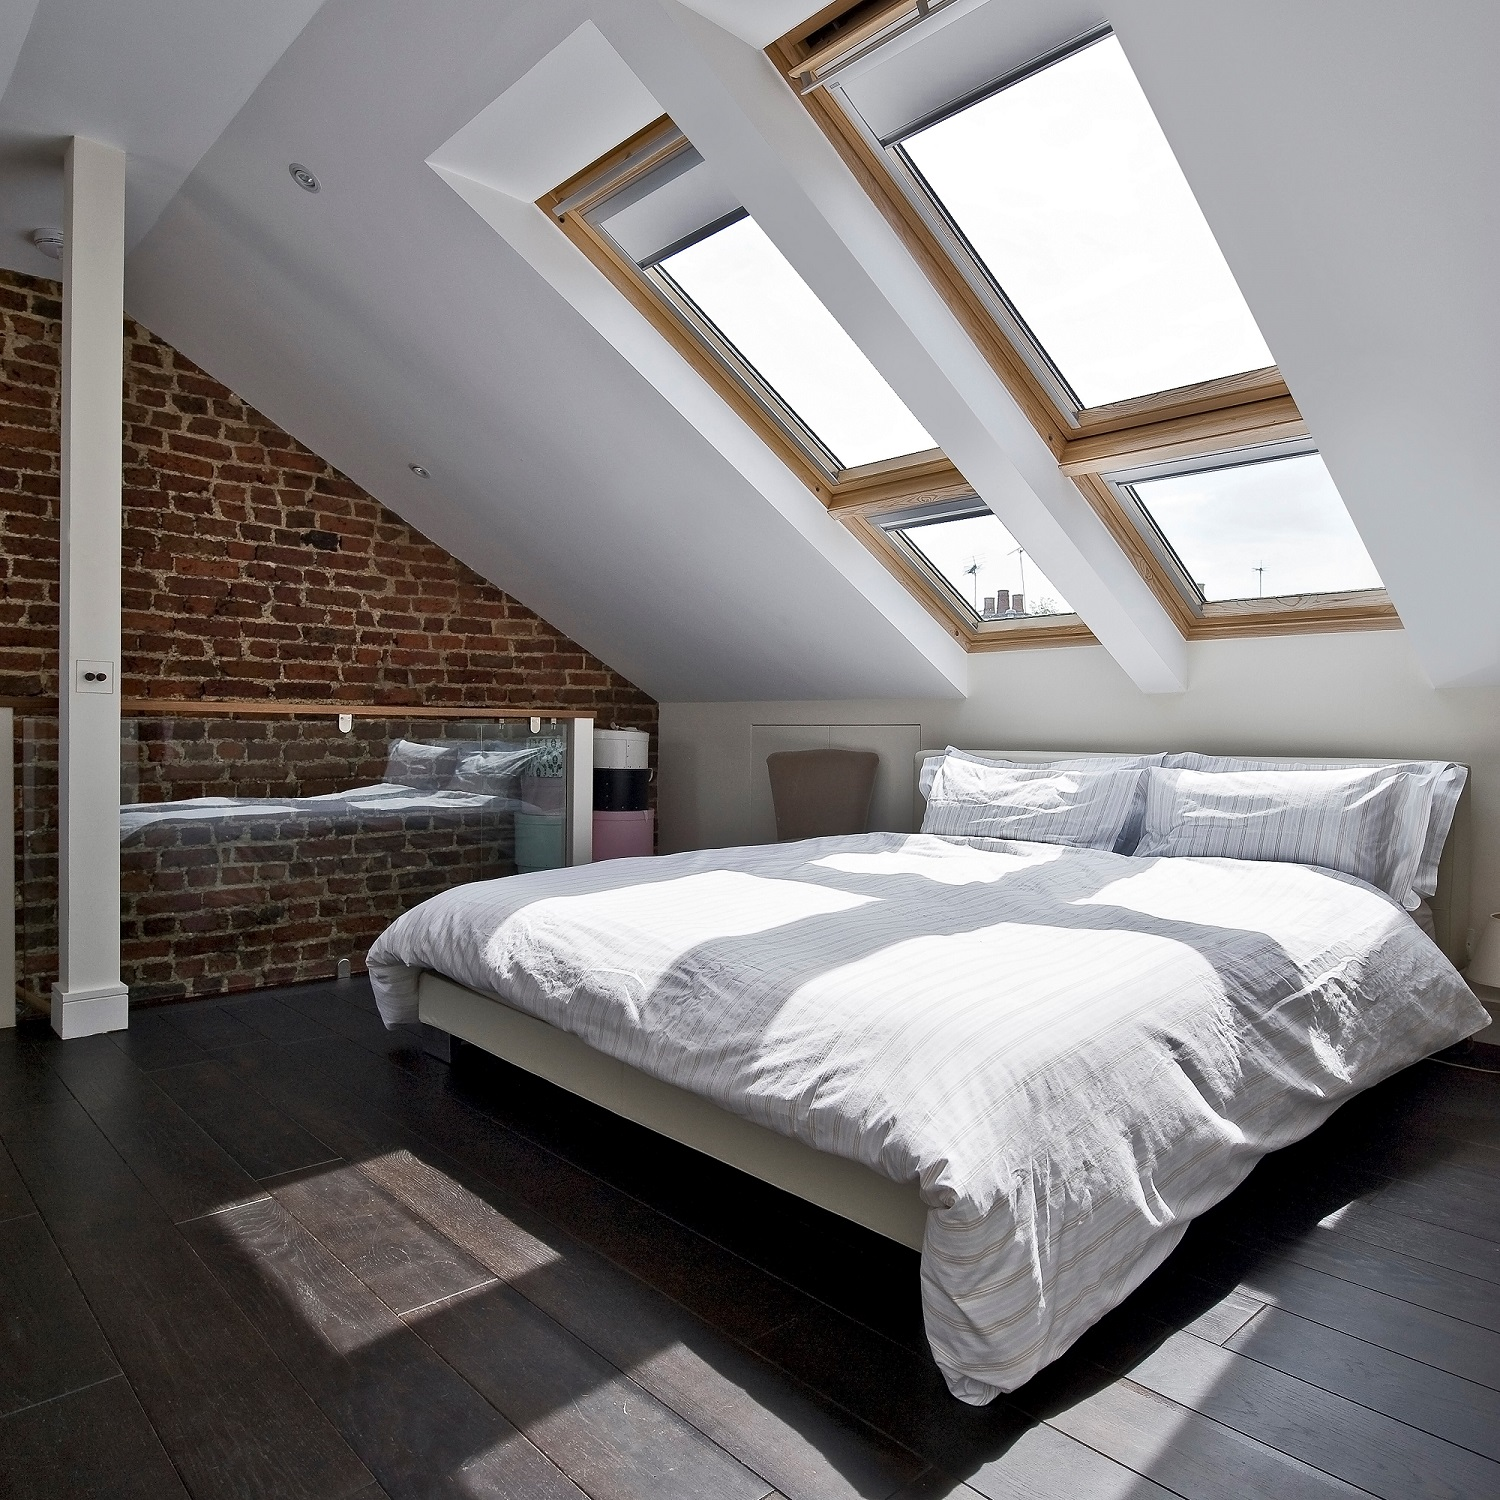 26 luxury loft bedroom ideas to enhance your home